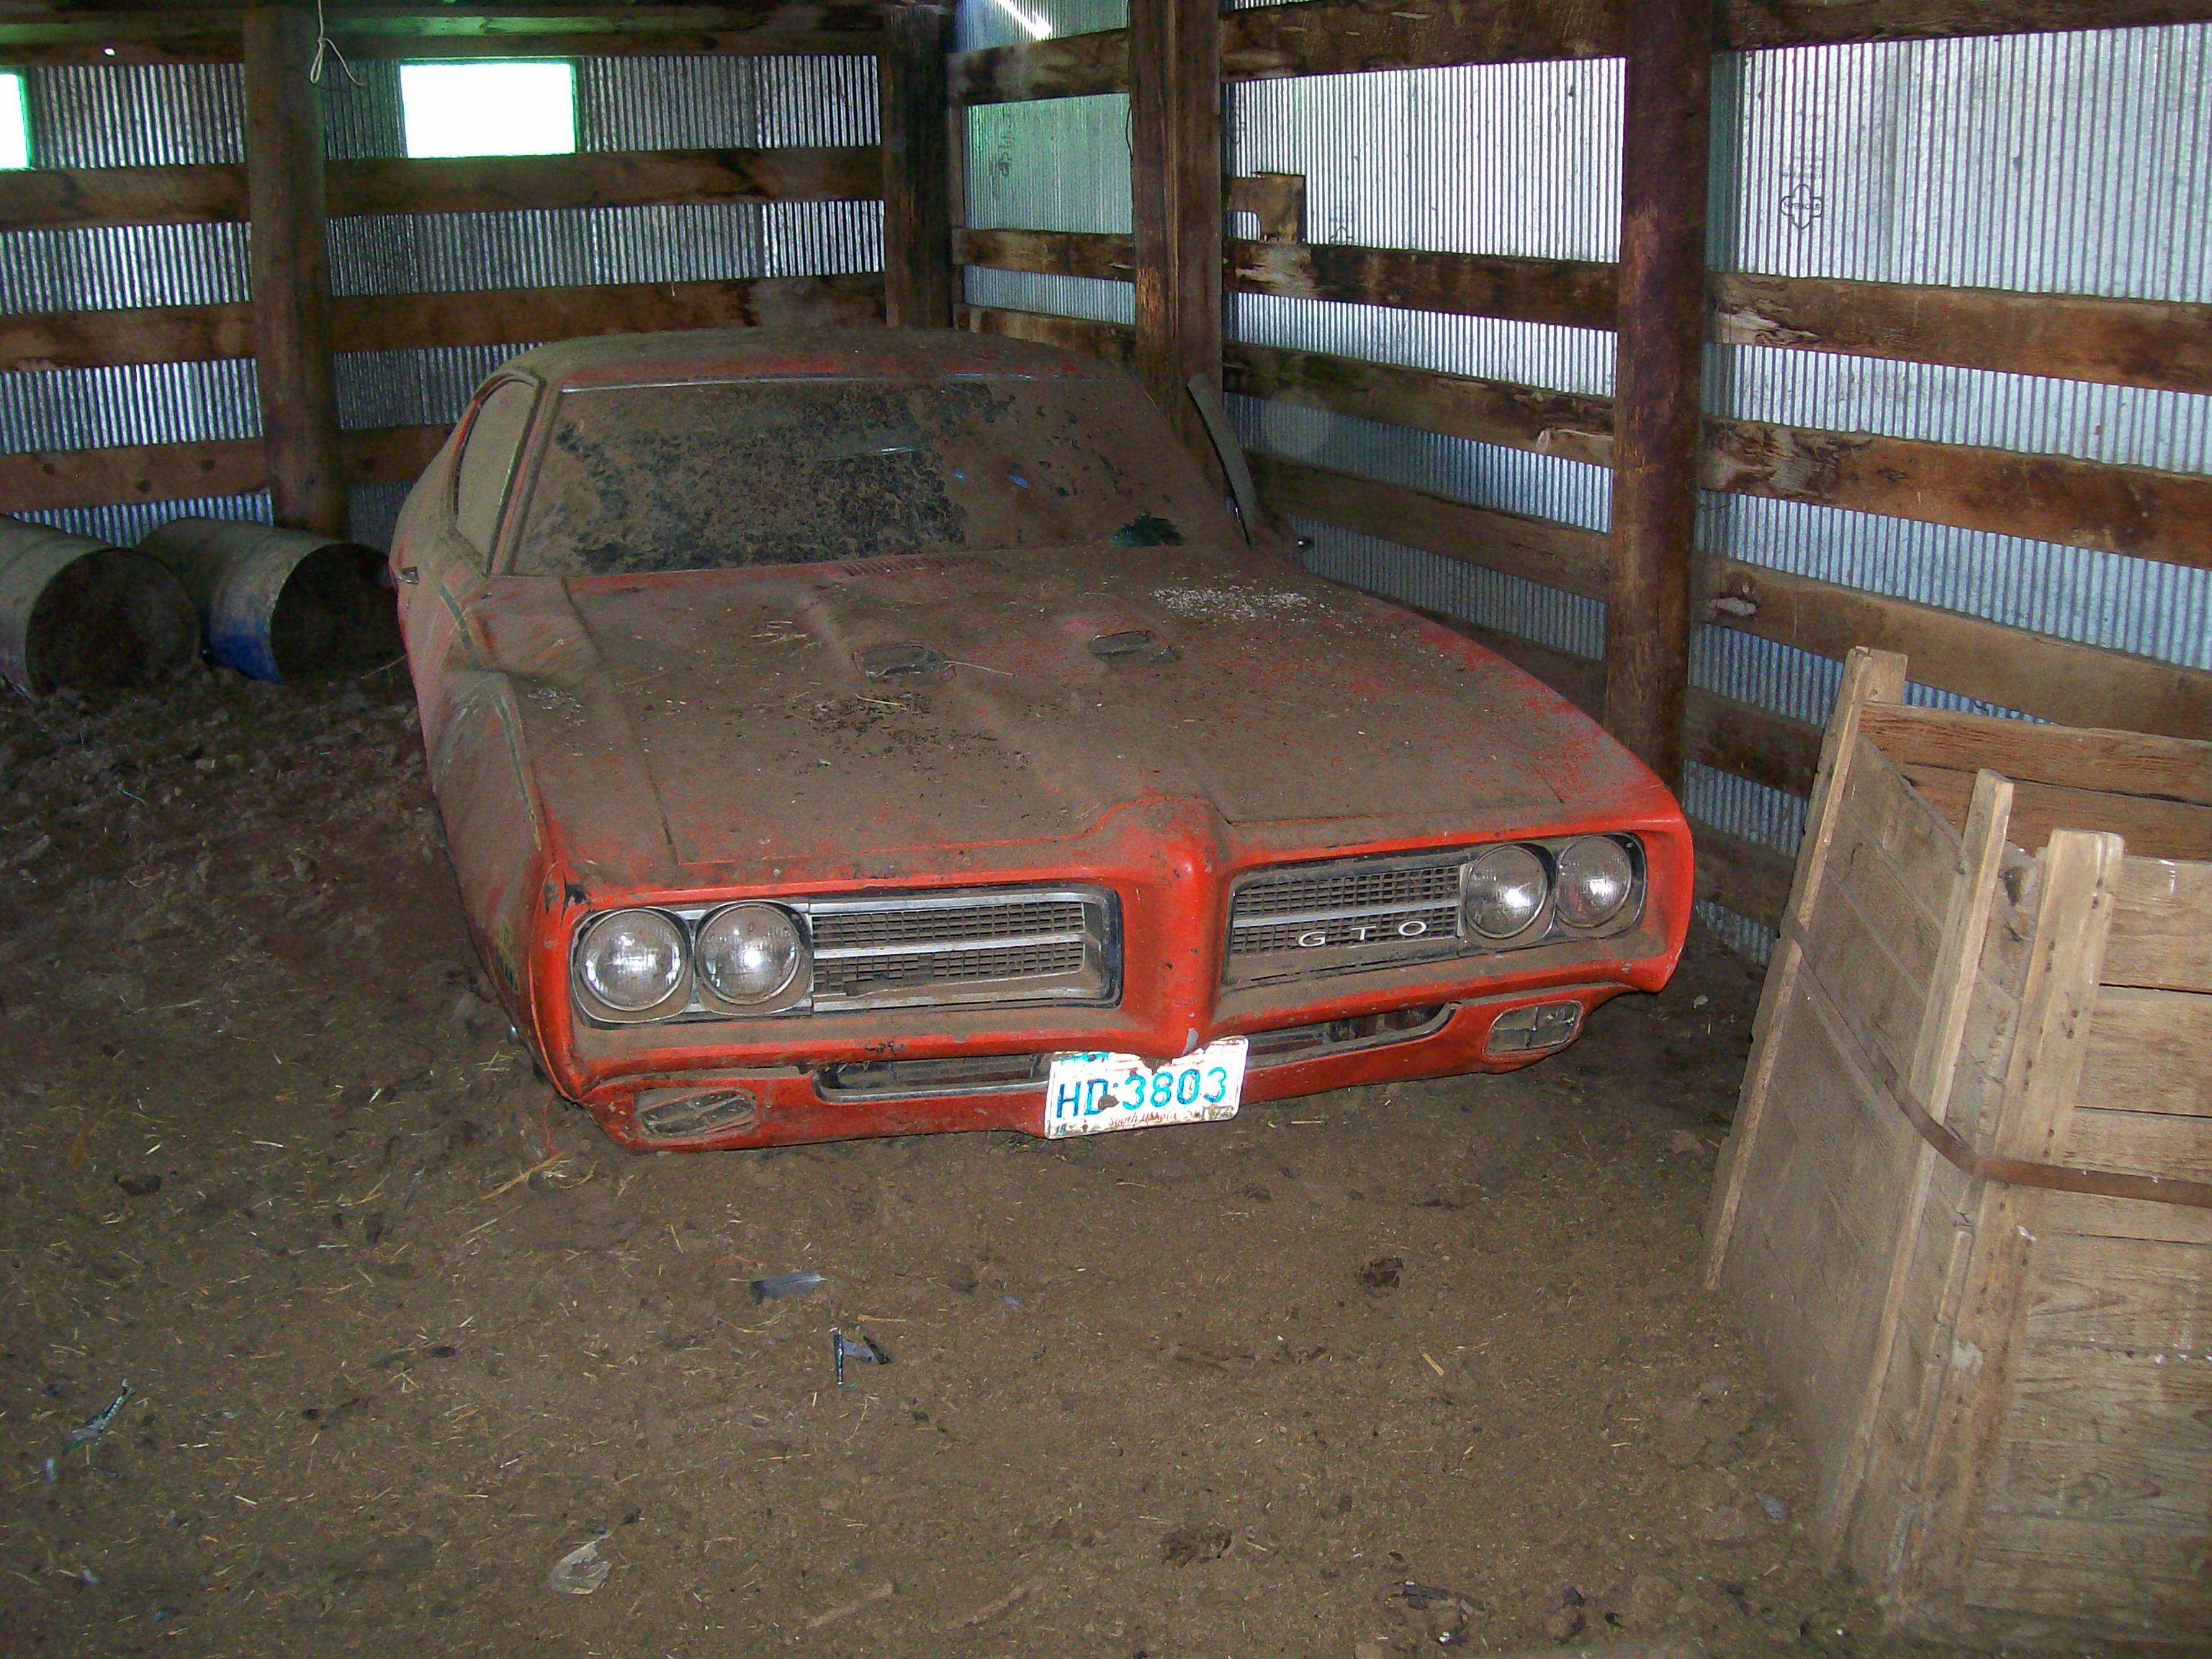 What's behind the barn door? Sakes alive, it's a '69 GTO Judge—one of 6,833 produced that model year and one of the hottest collector cars in the muscle-car hobby today.